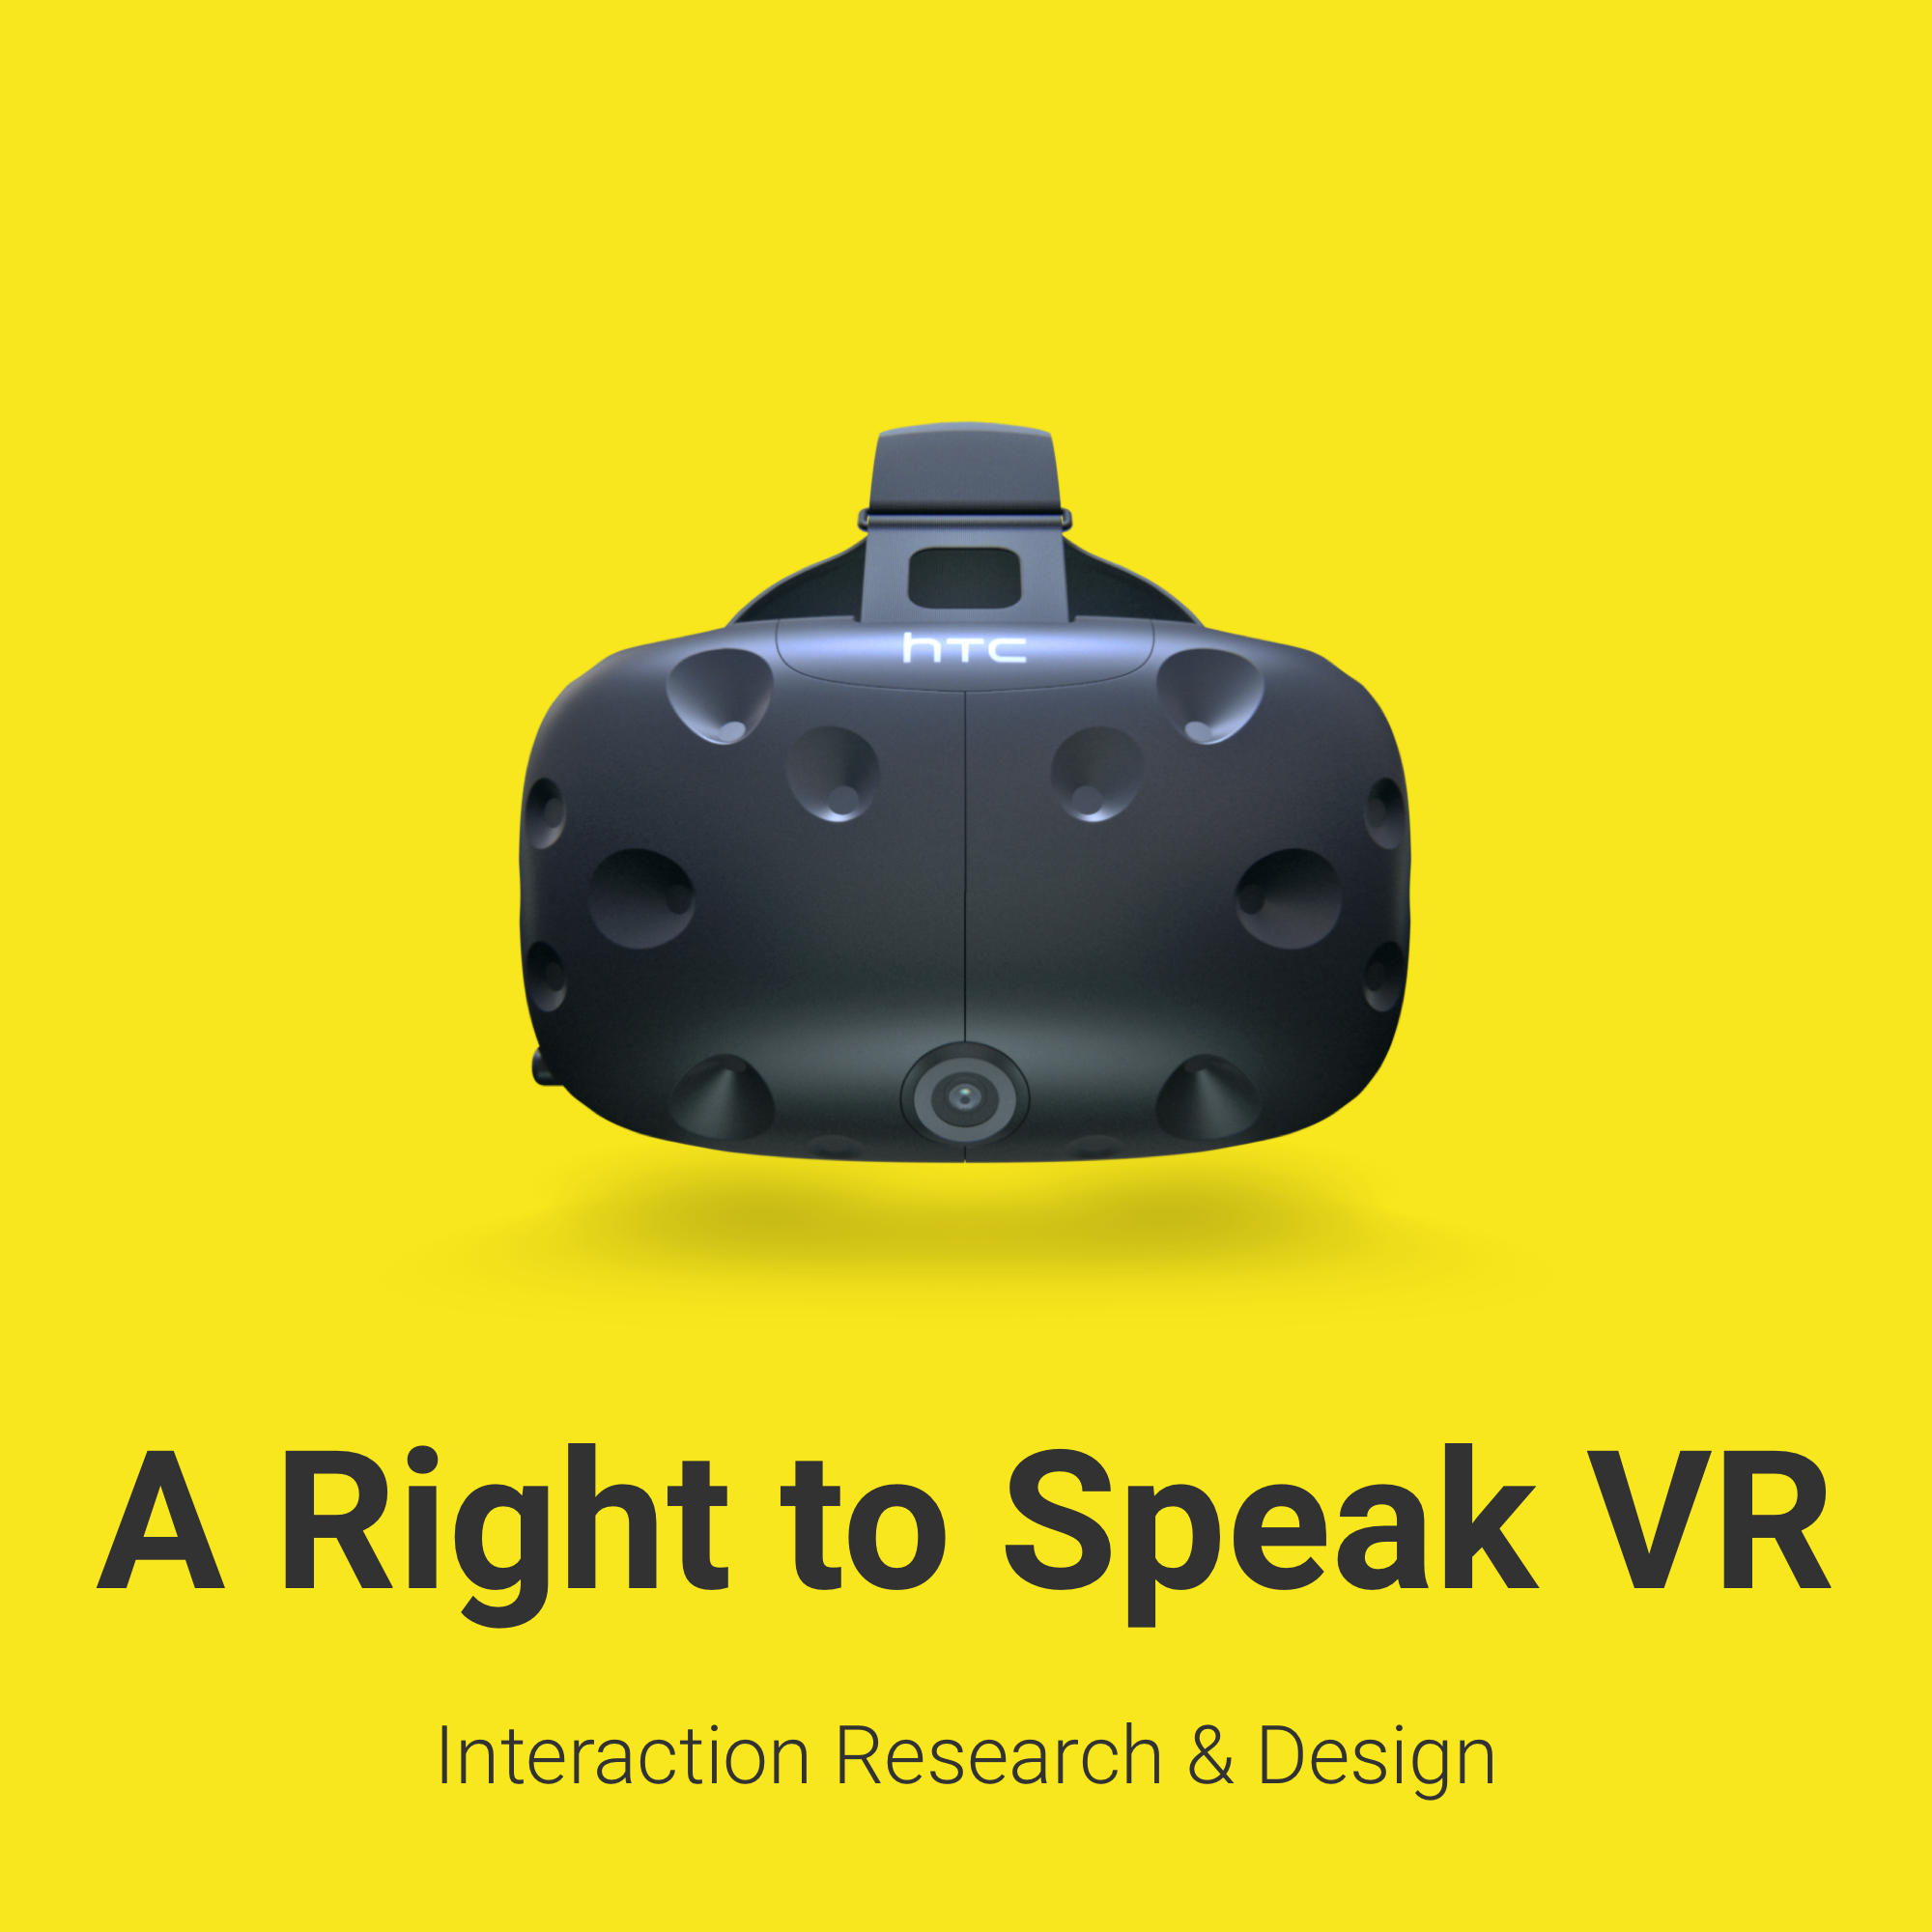 Right to speak VR interaction research and design .png